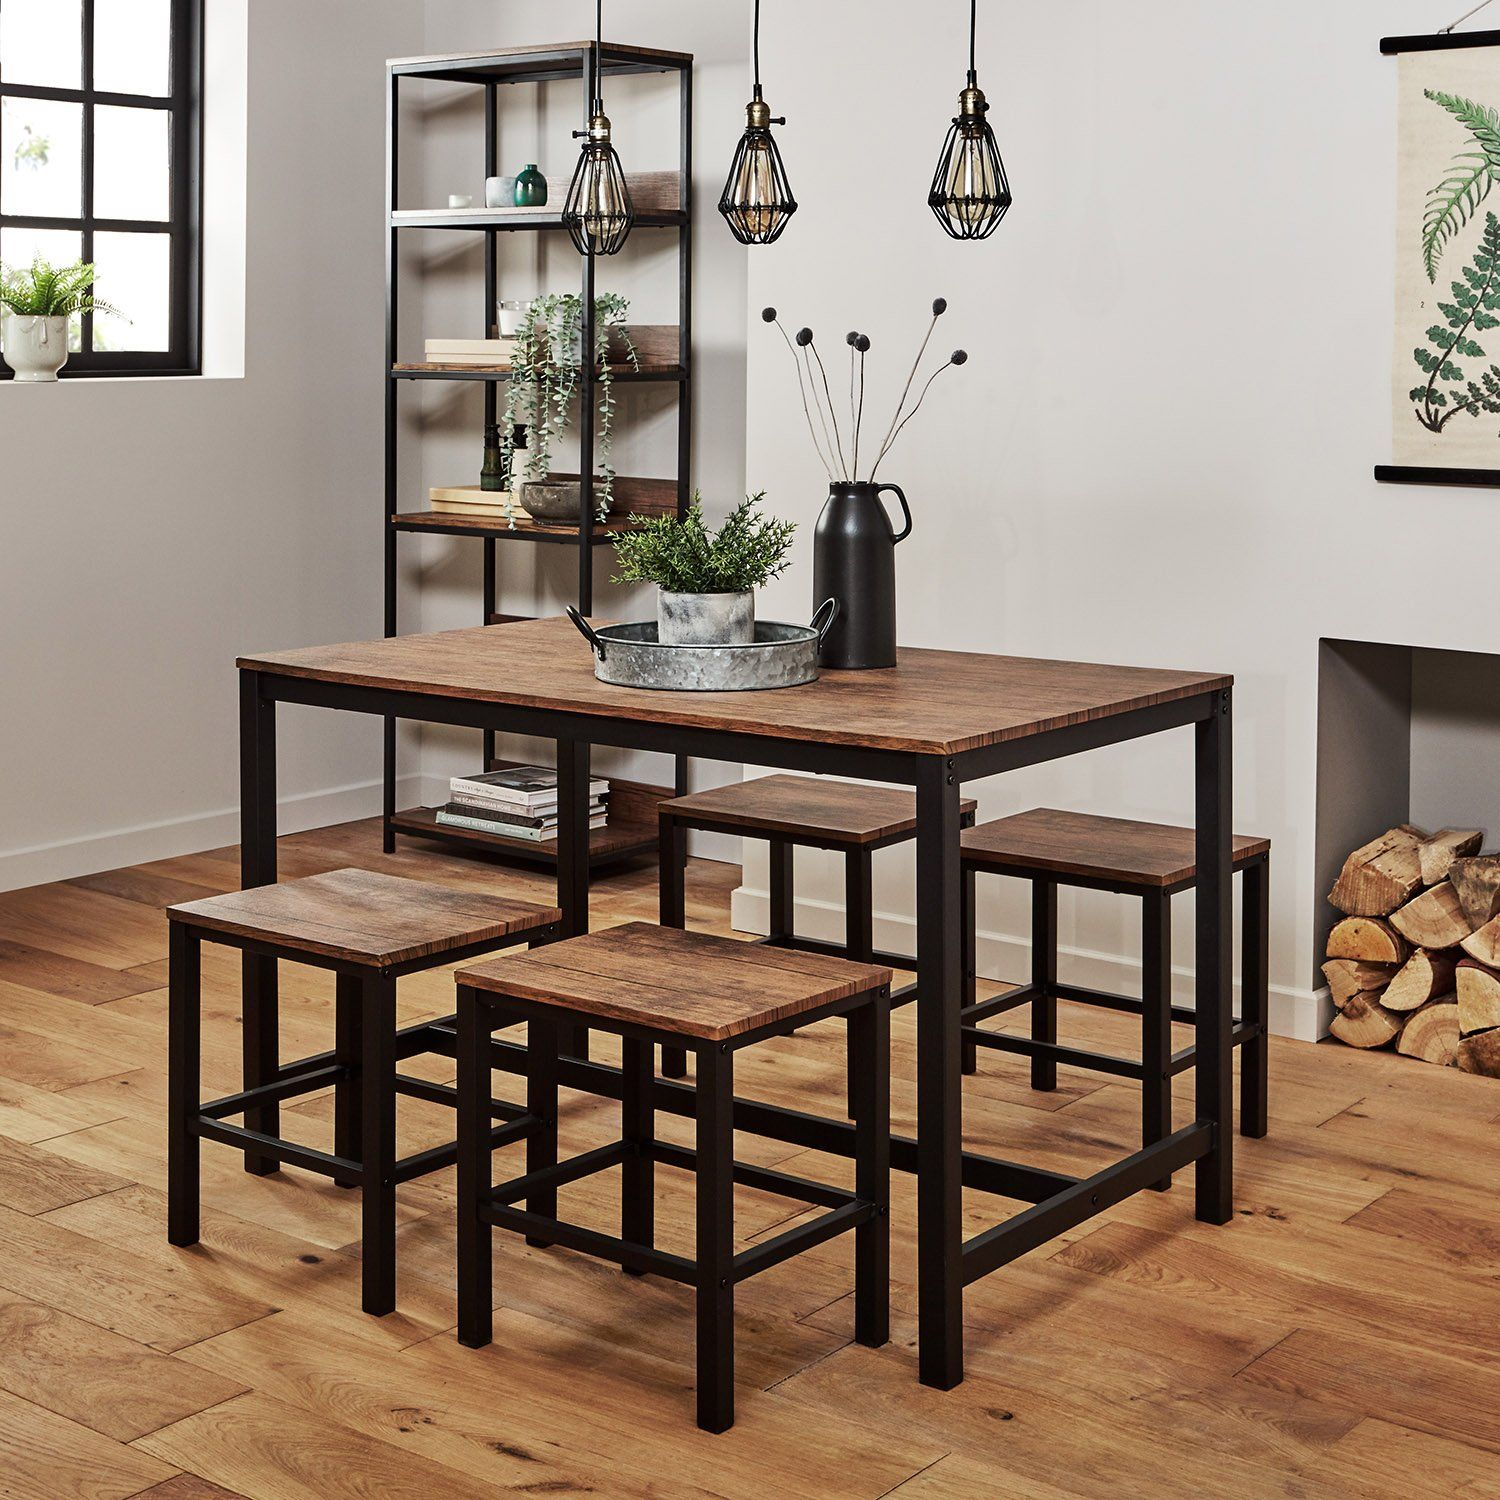 Oak dining set with four rustic benches and three drop-down lamps